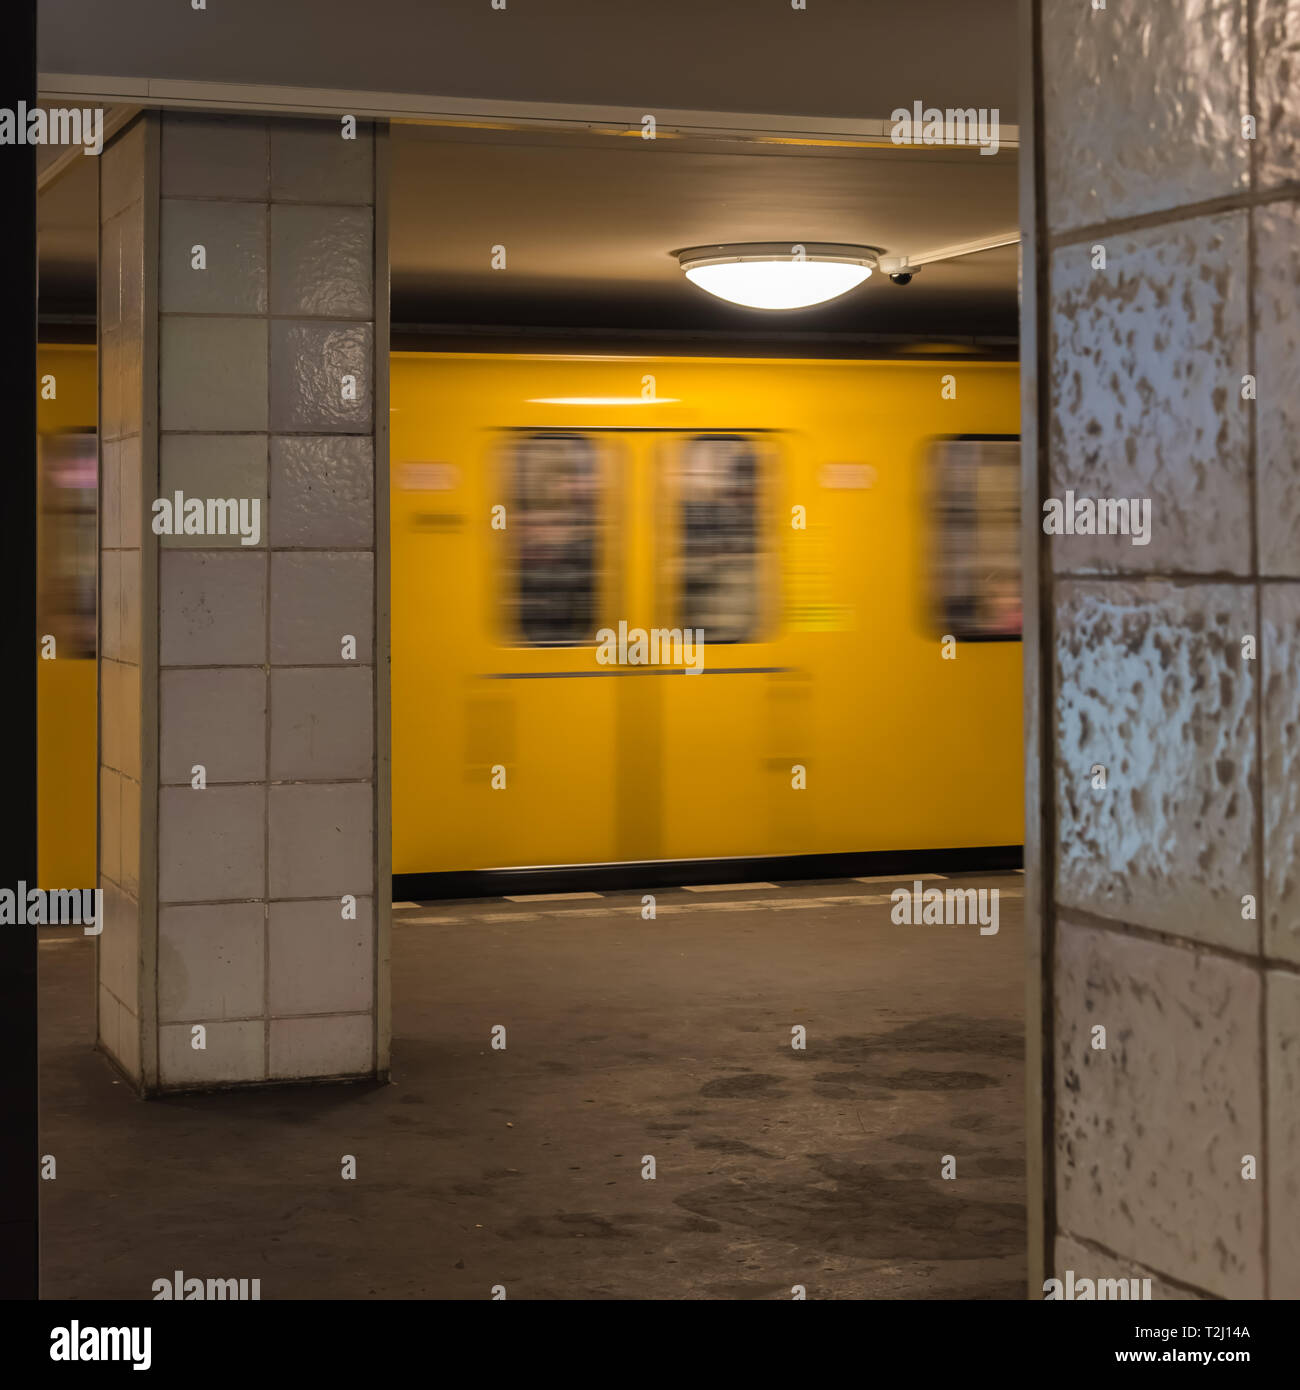 The old yellow berlin subway moves swiftly into the subway station - Stock Image